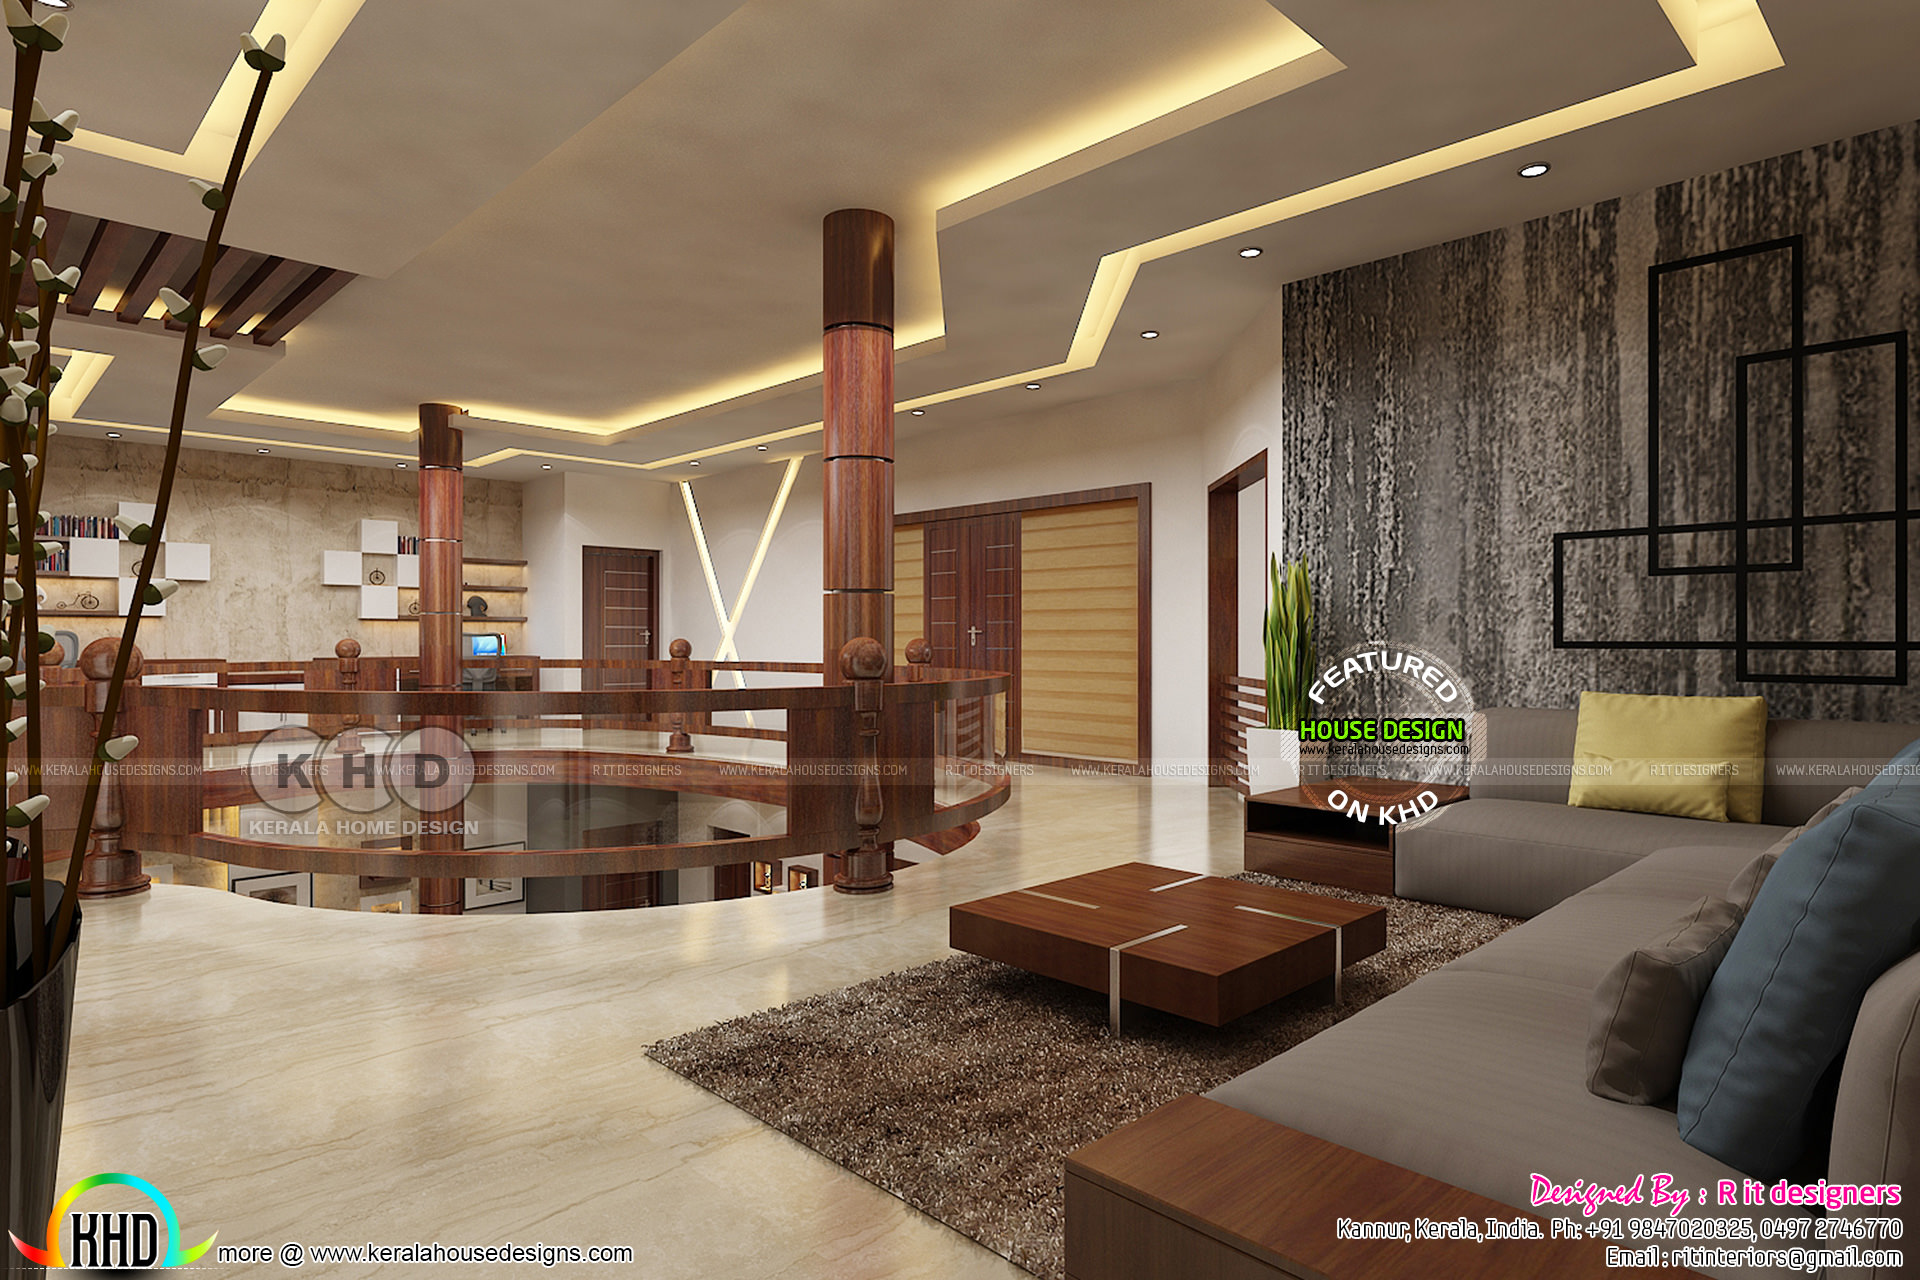 Upper floor interior designs by Rit interiors - Kerala